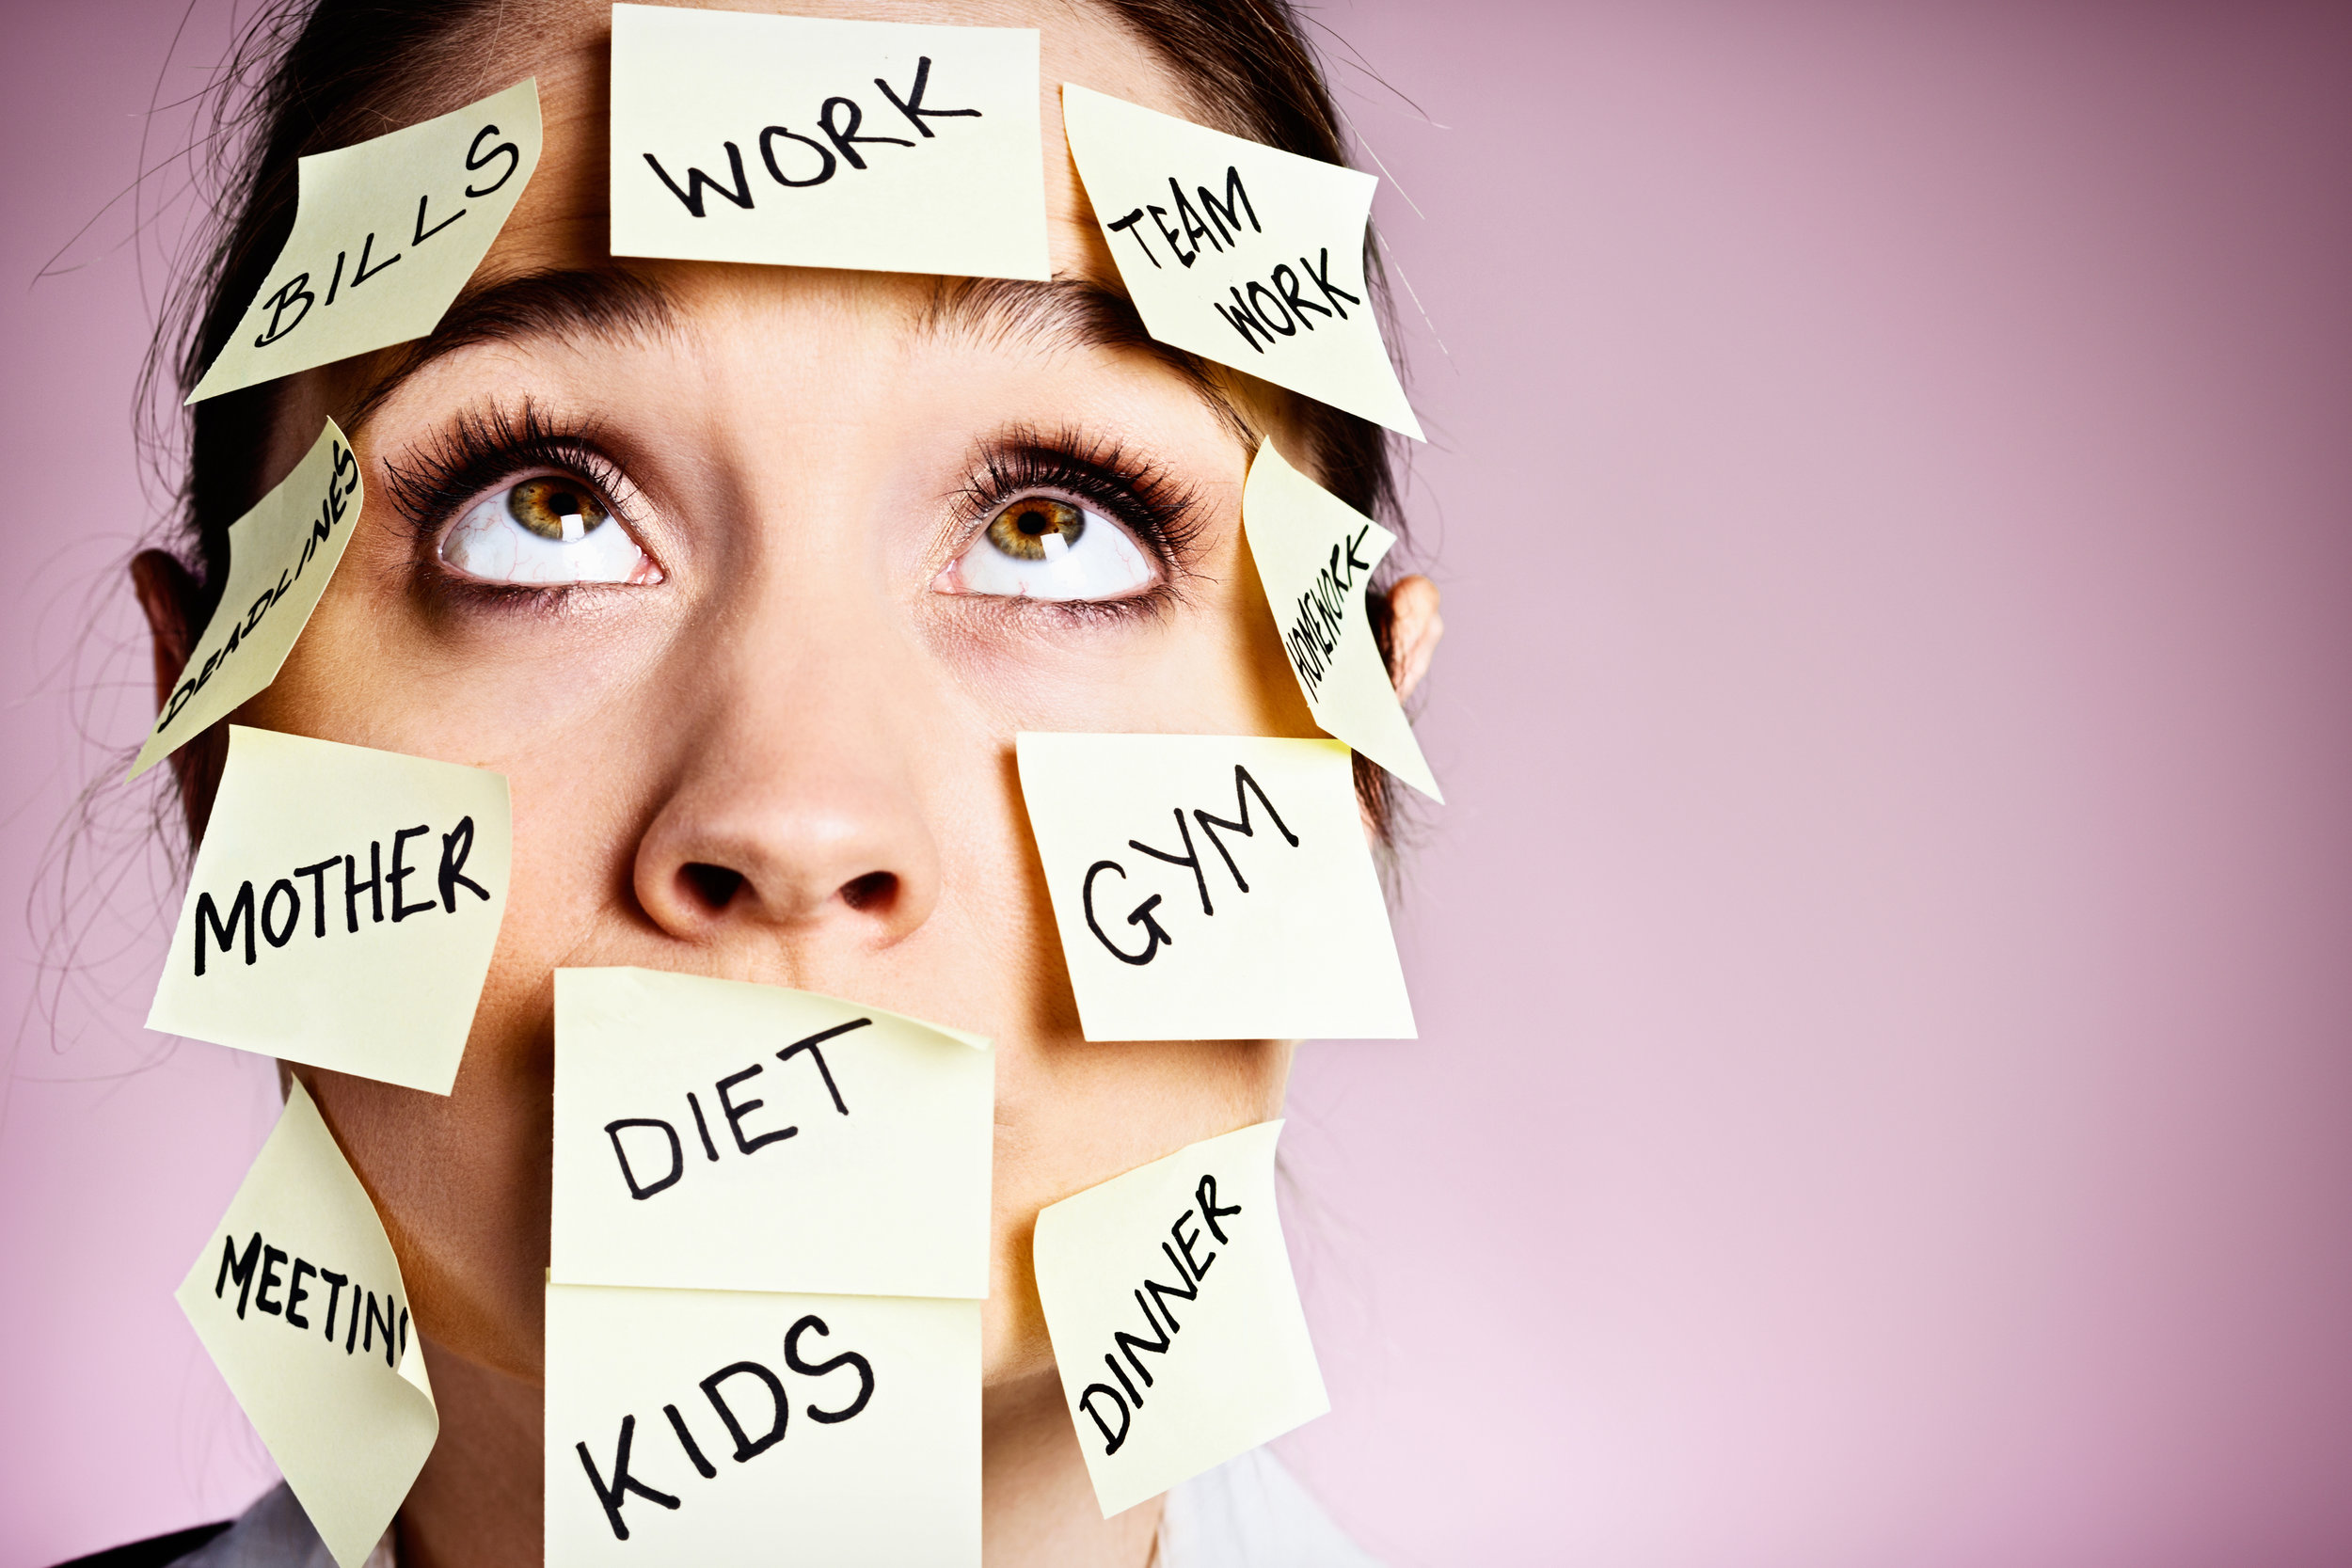 Frustrated-woman-covered-in-stiocky-reminders-rolls-her-eyes-453539161_3867x2578.jpeg